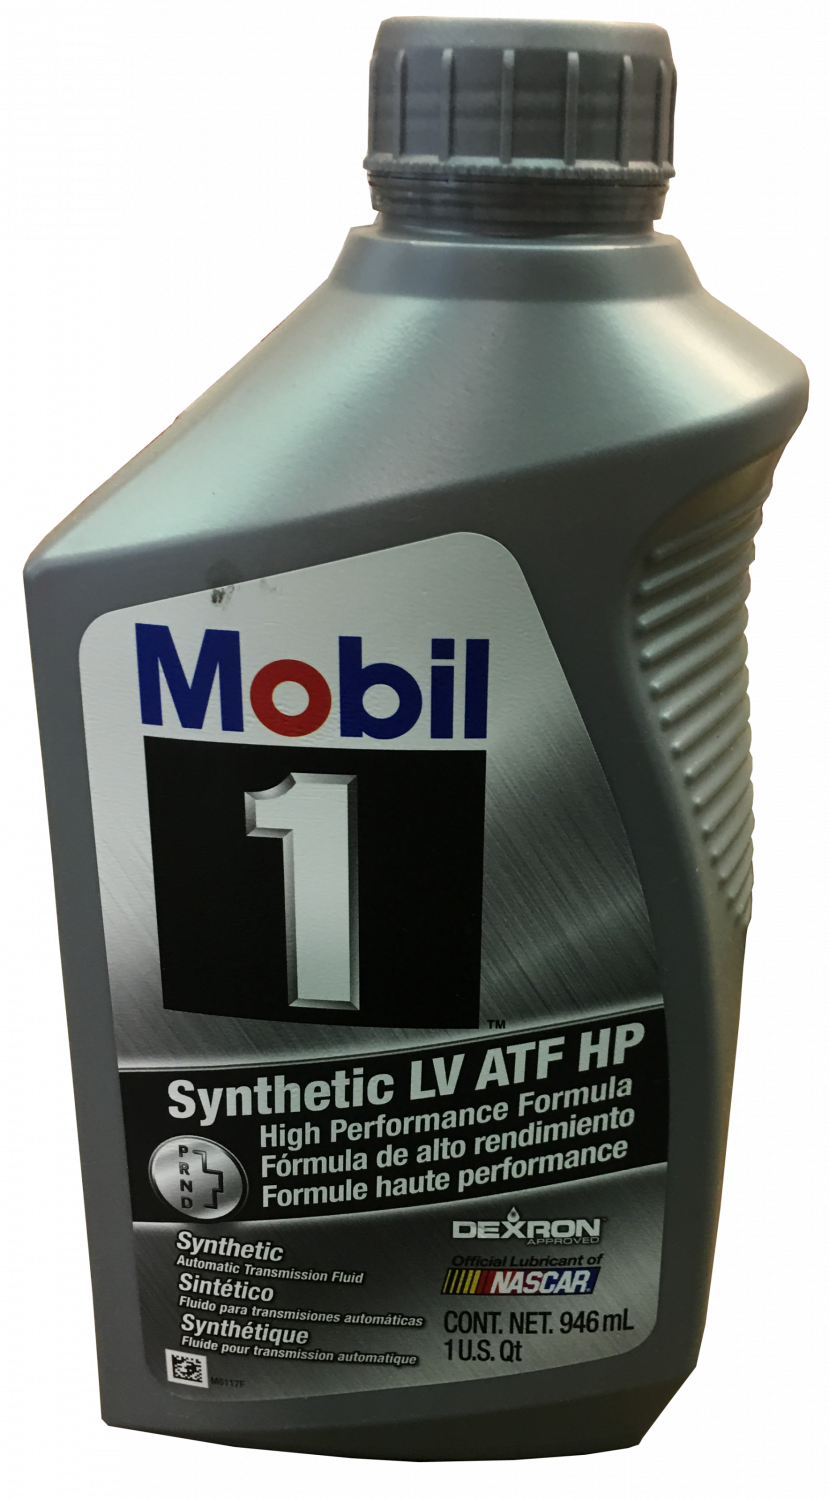 19353429 Mobil 1 Synthetic Lv Atf Hp Transmission Fluid 1 Quart Container